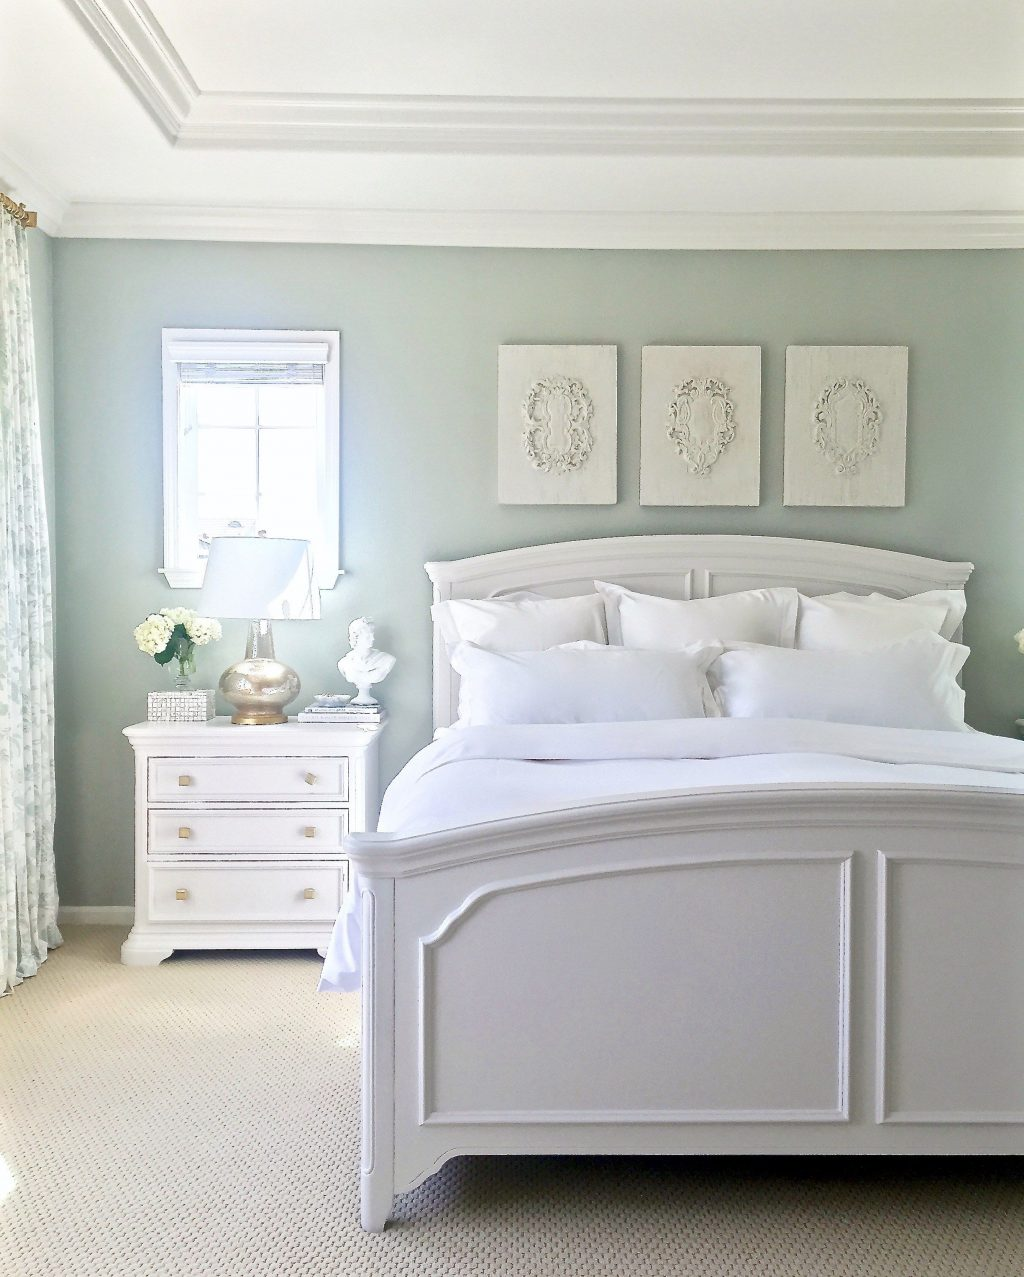 My New Summer White Bedding From Boll Branch Bedroom Ideas